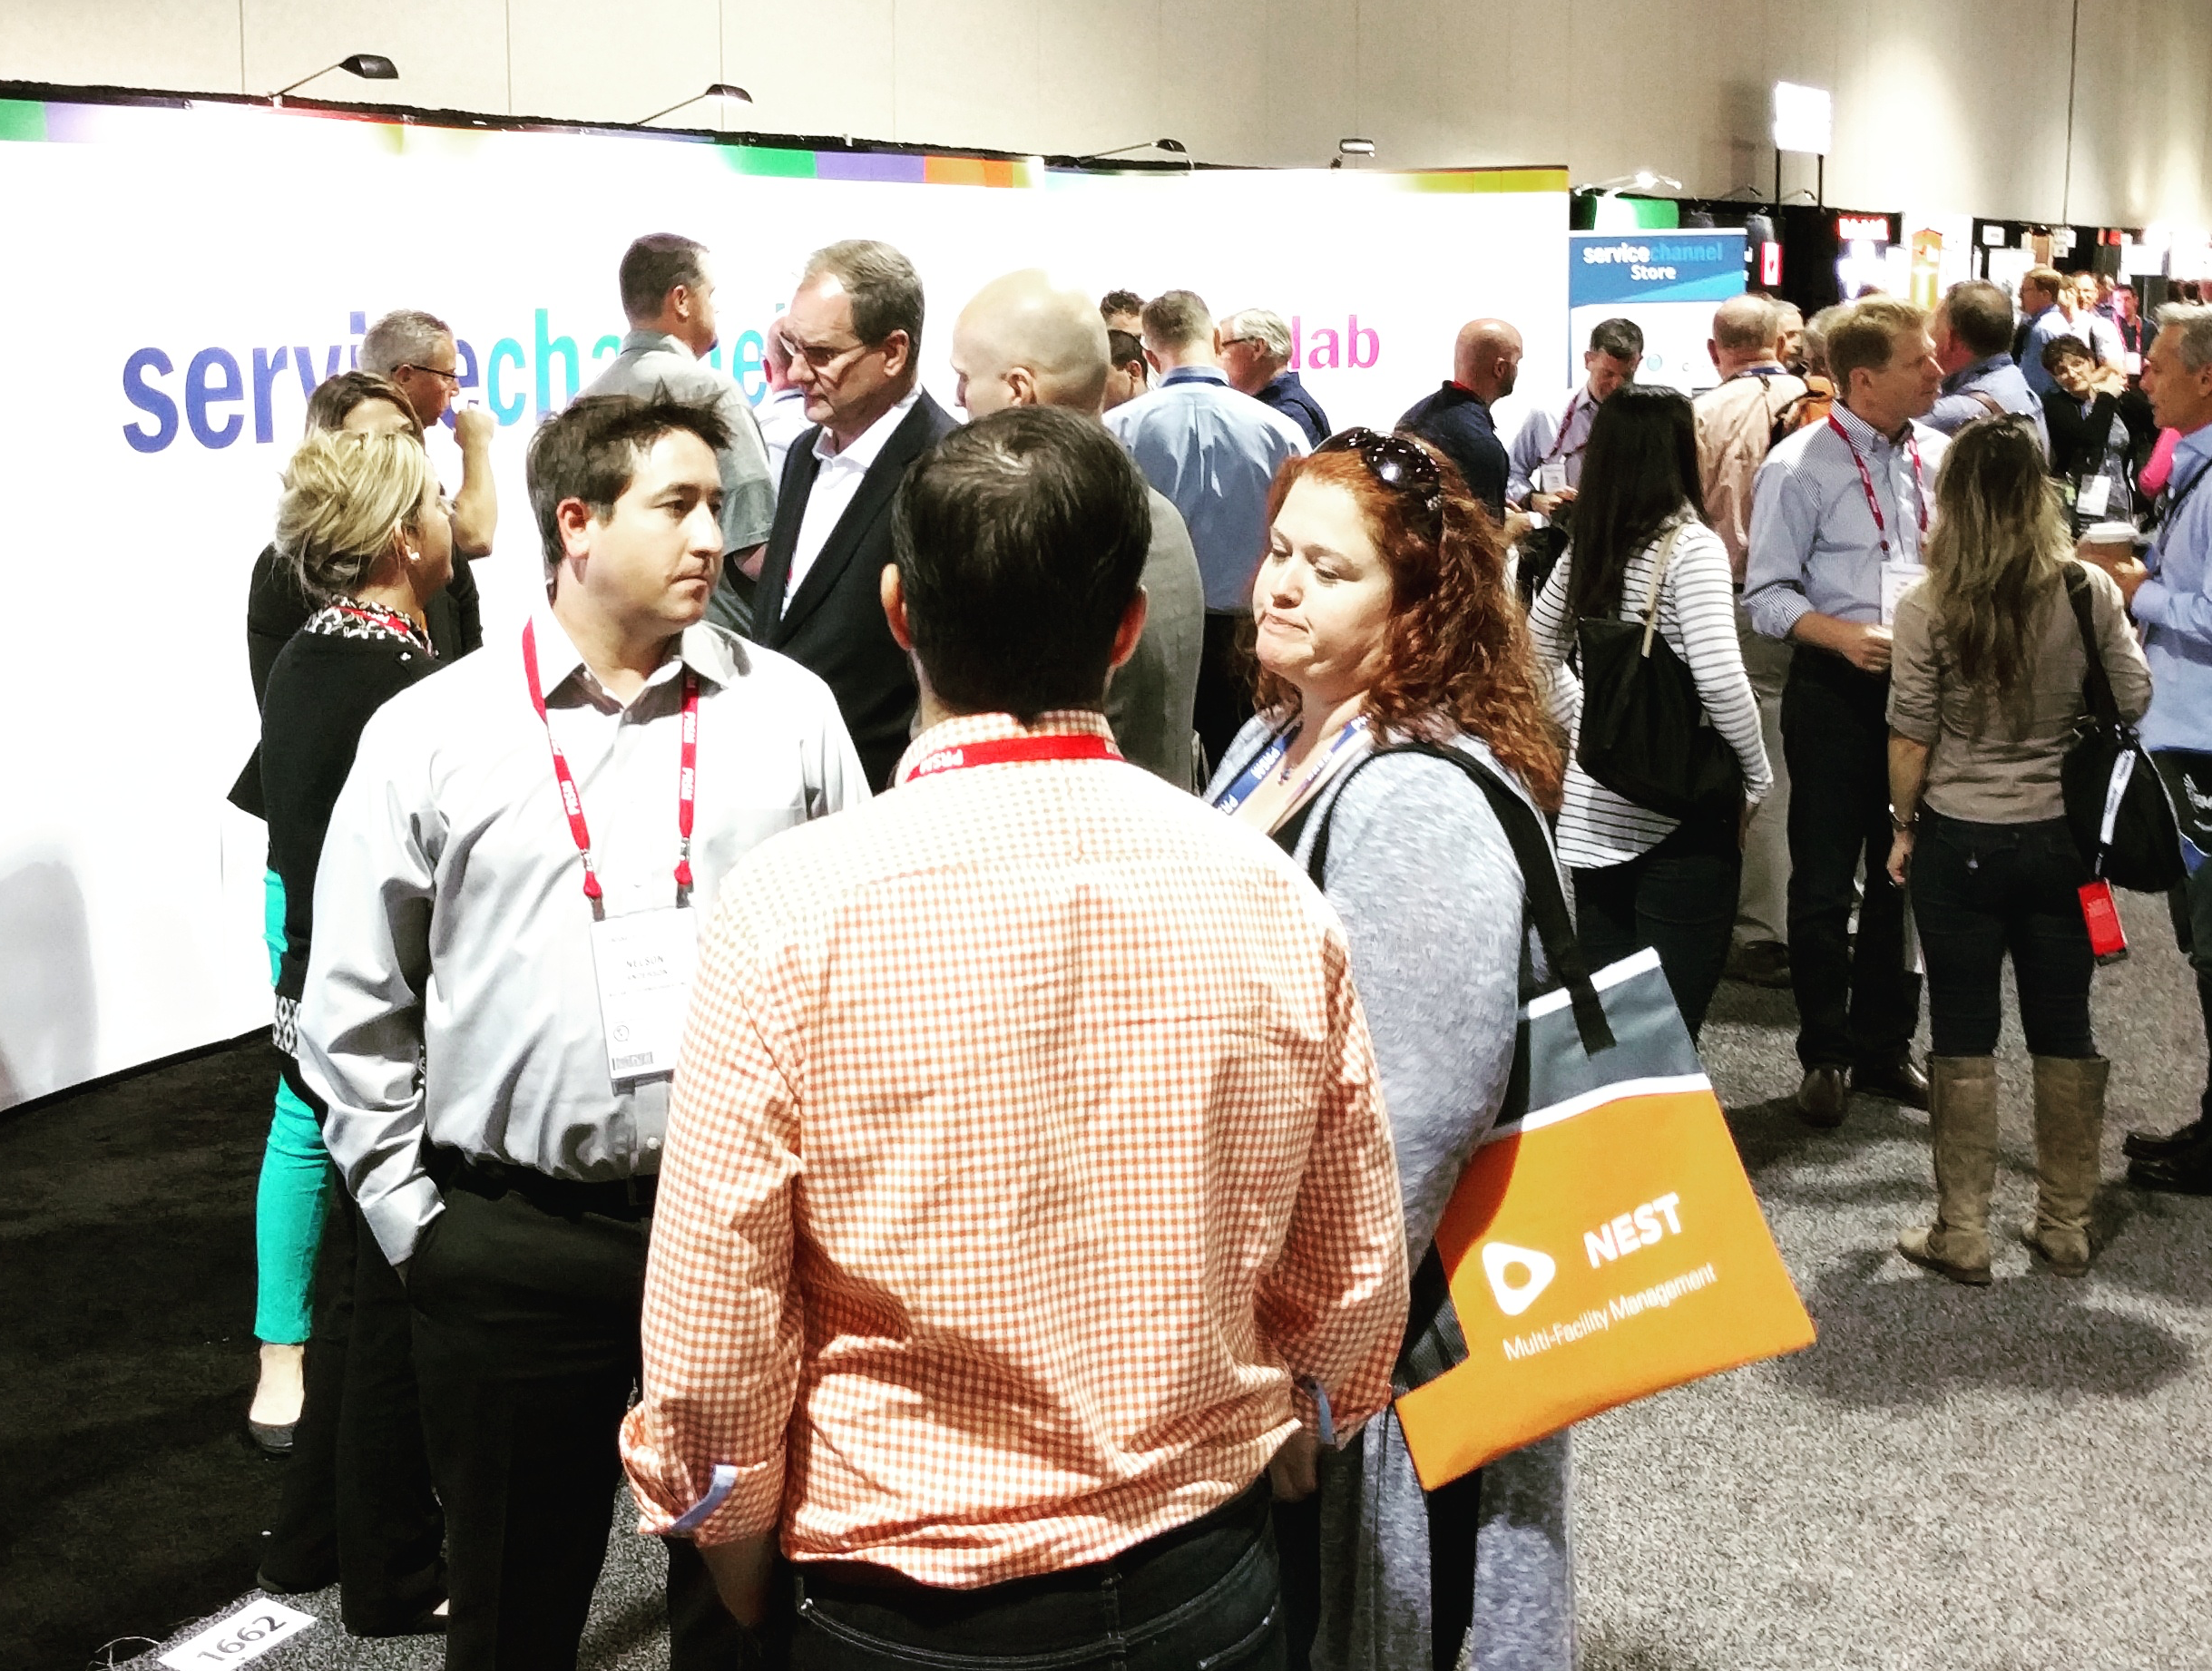 Busy in front of the ServiceChannel Booth at PRSM 2016